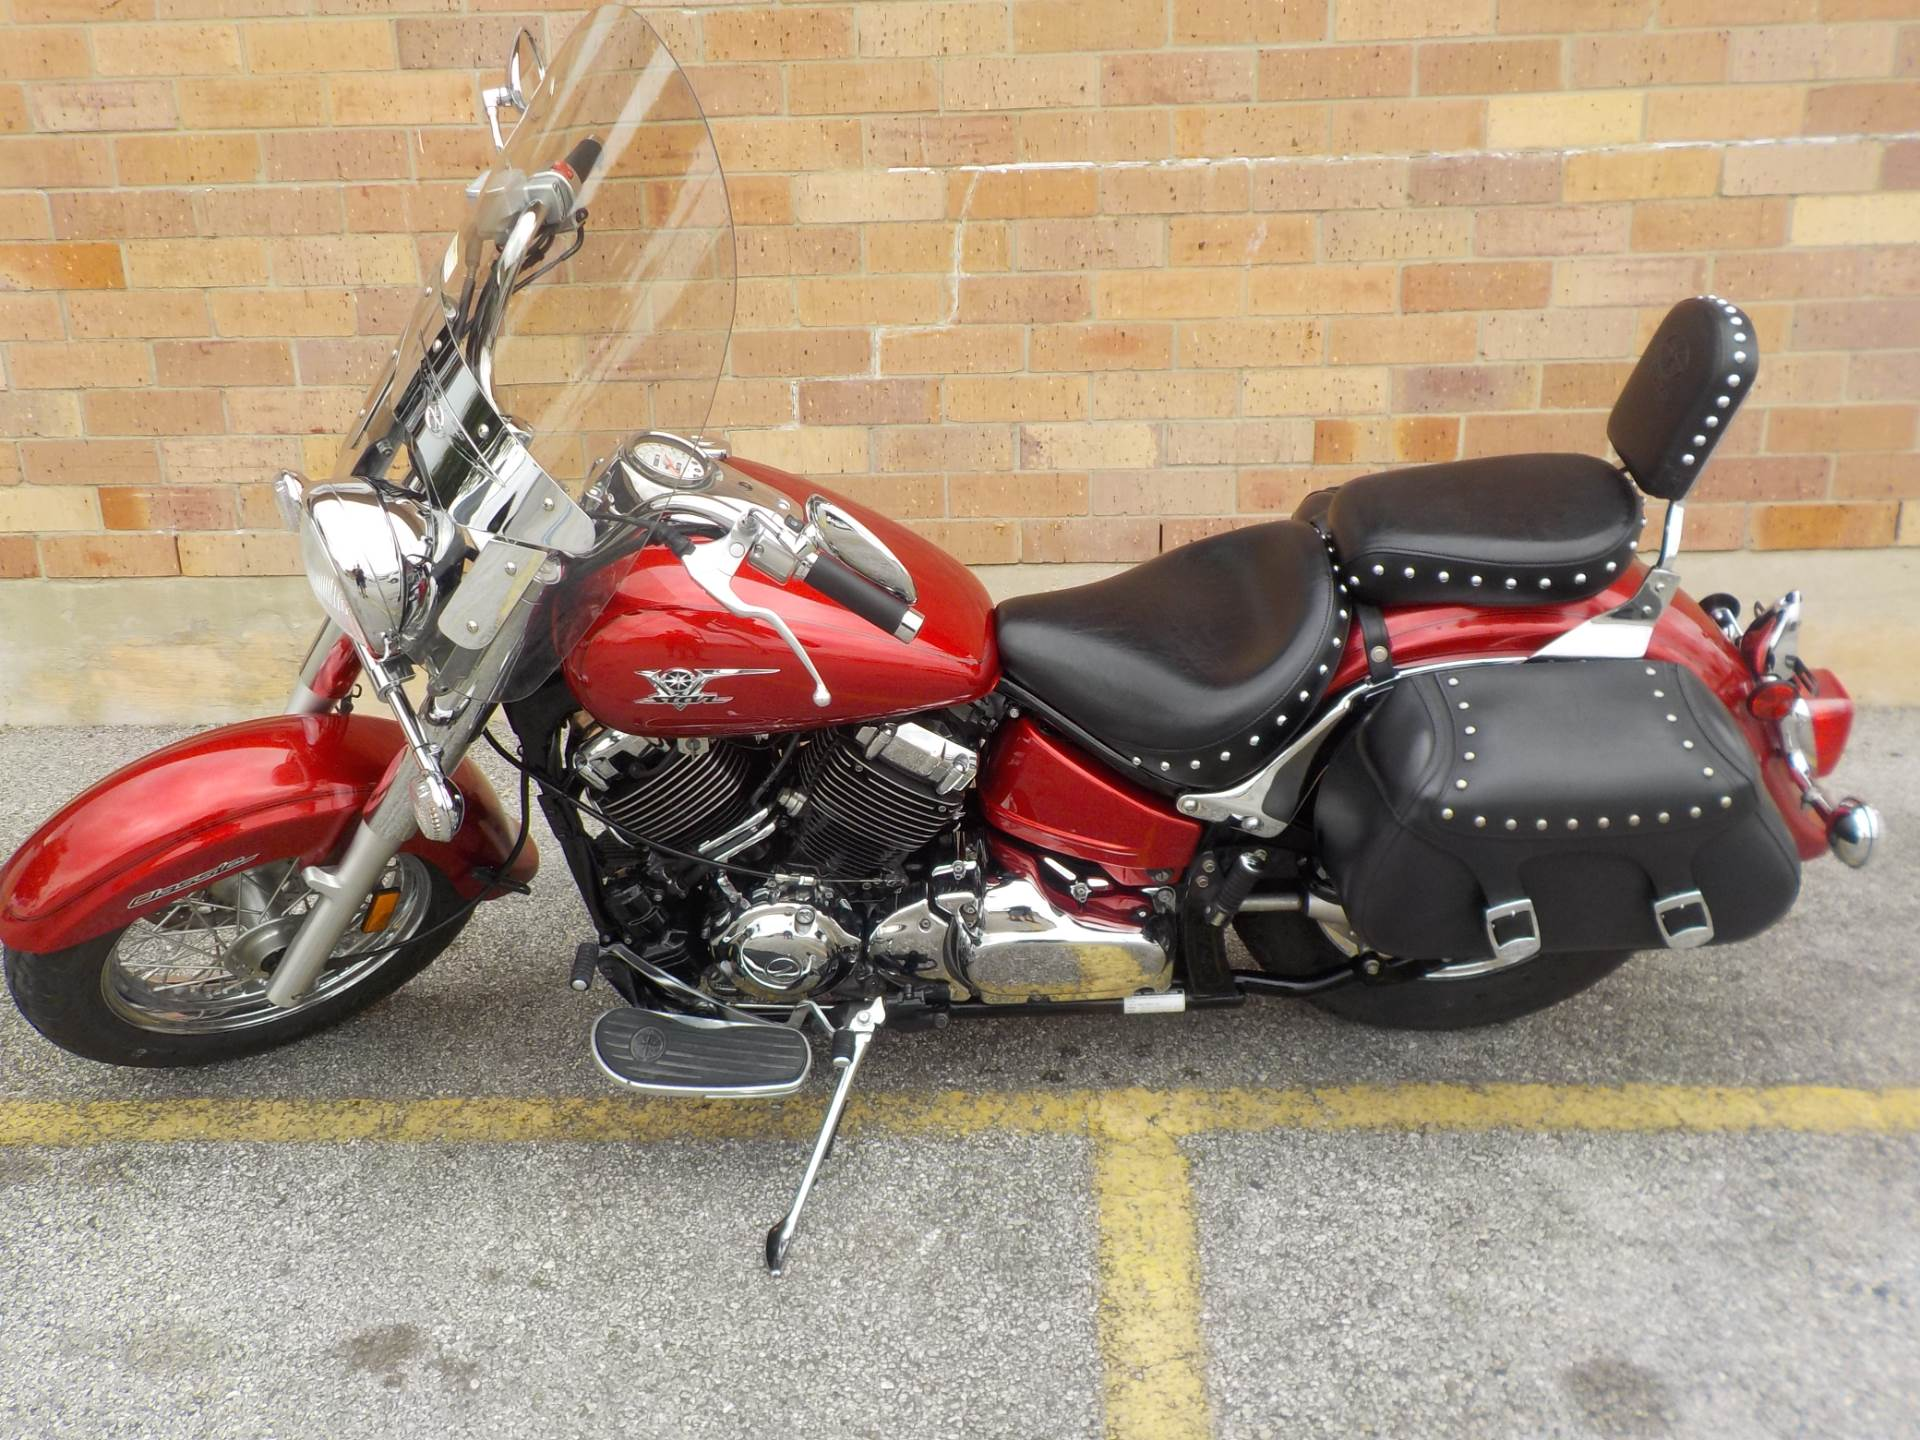 2009 Yamaha V Star 650 Silverado in San Antonio, Texas